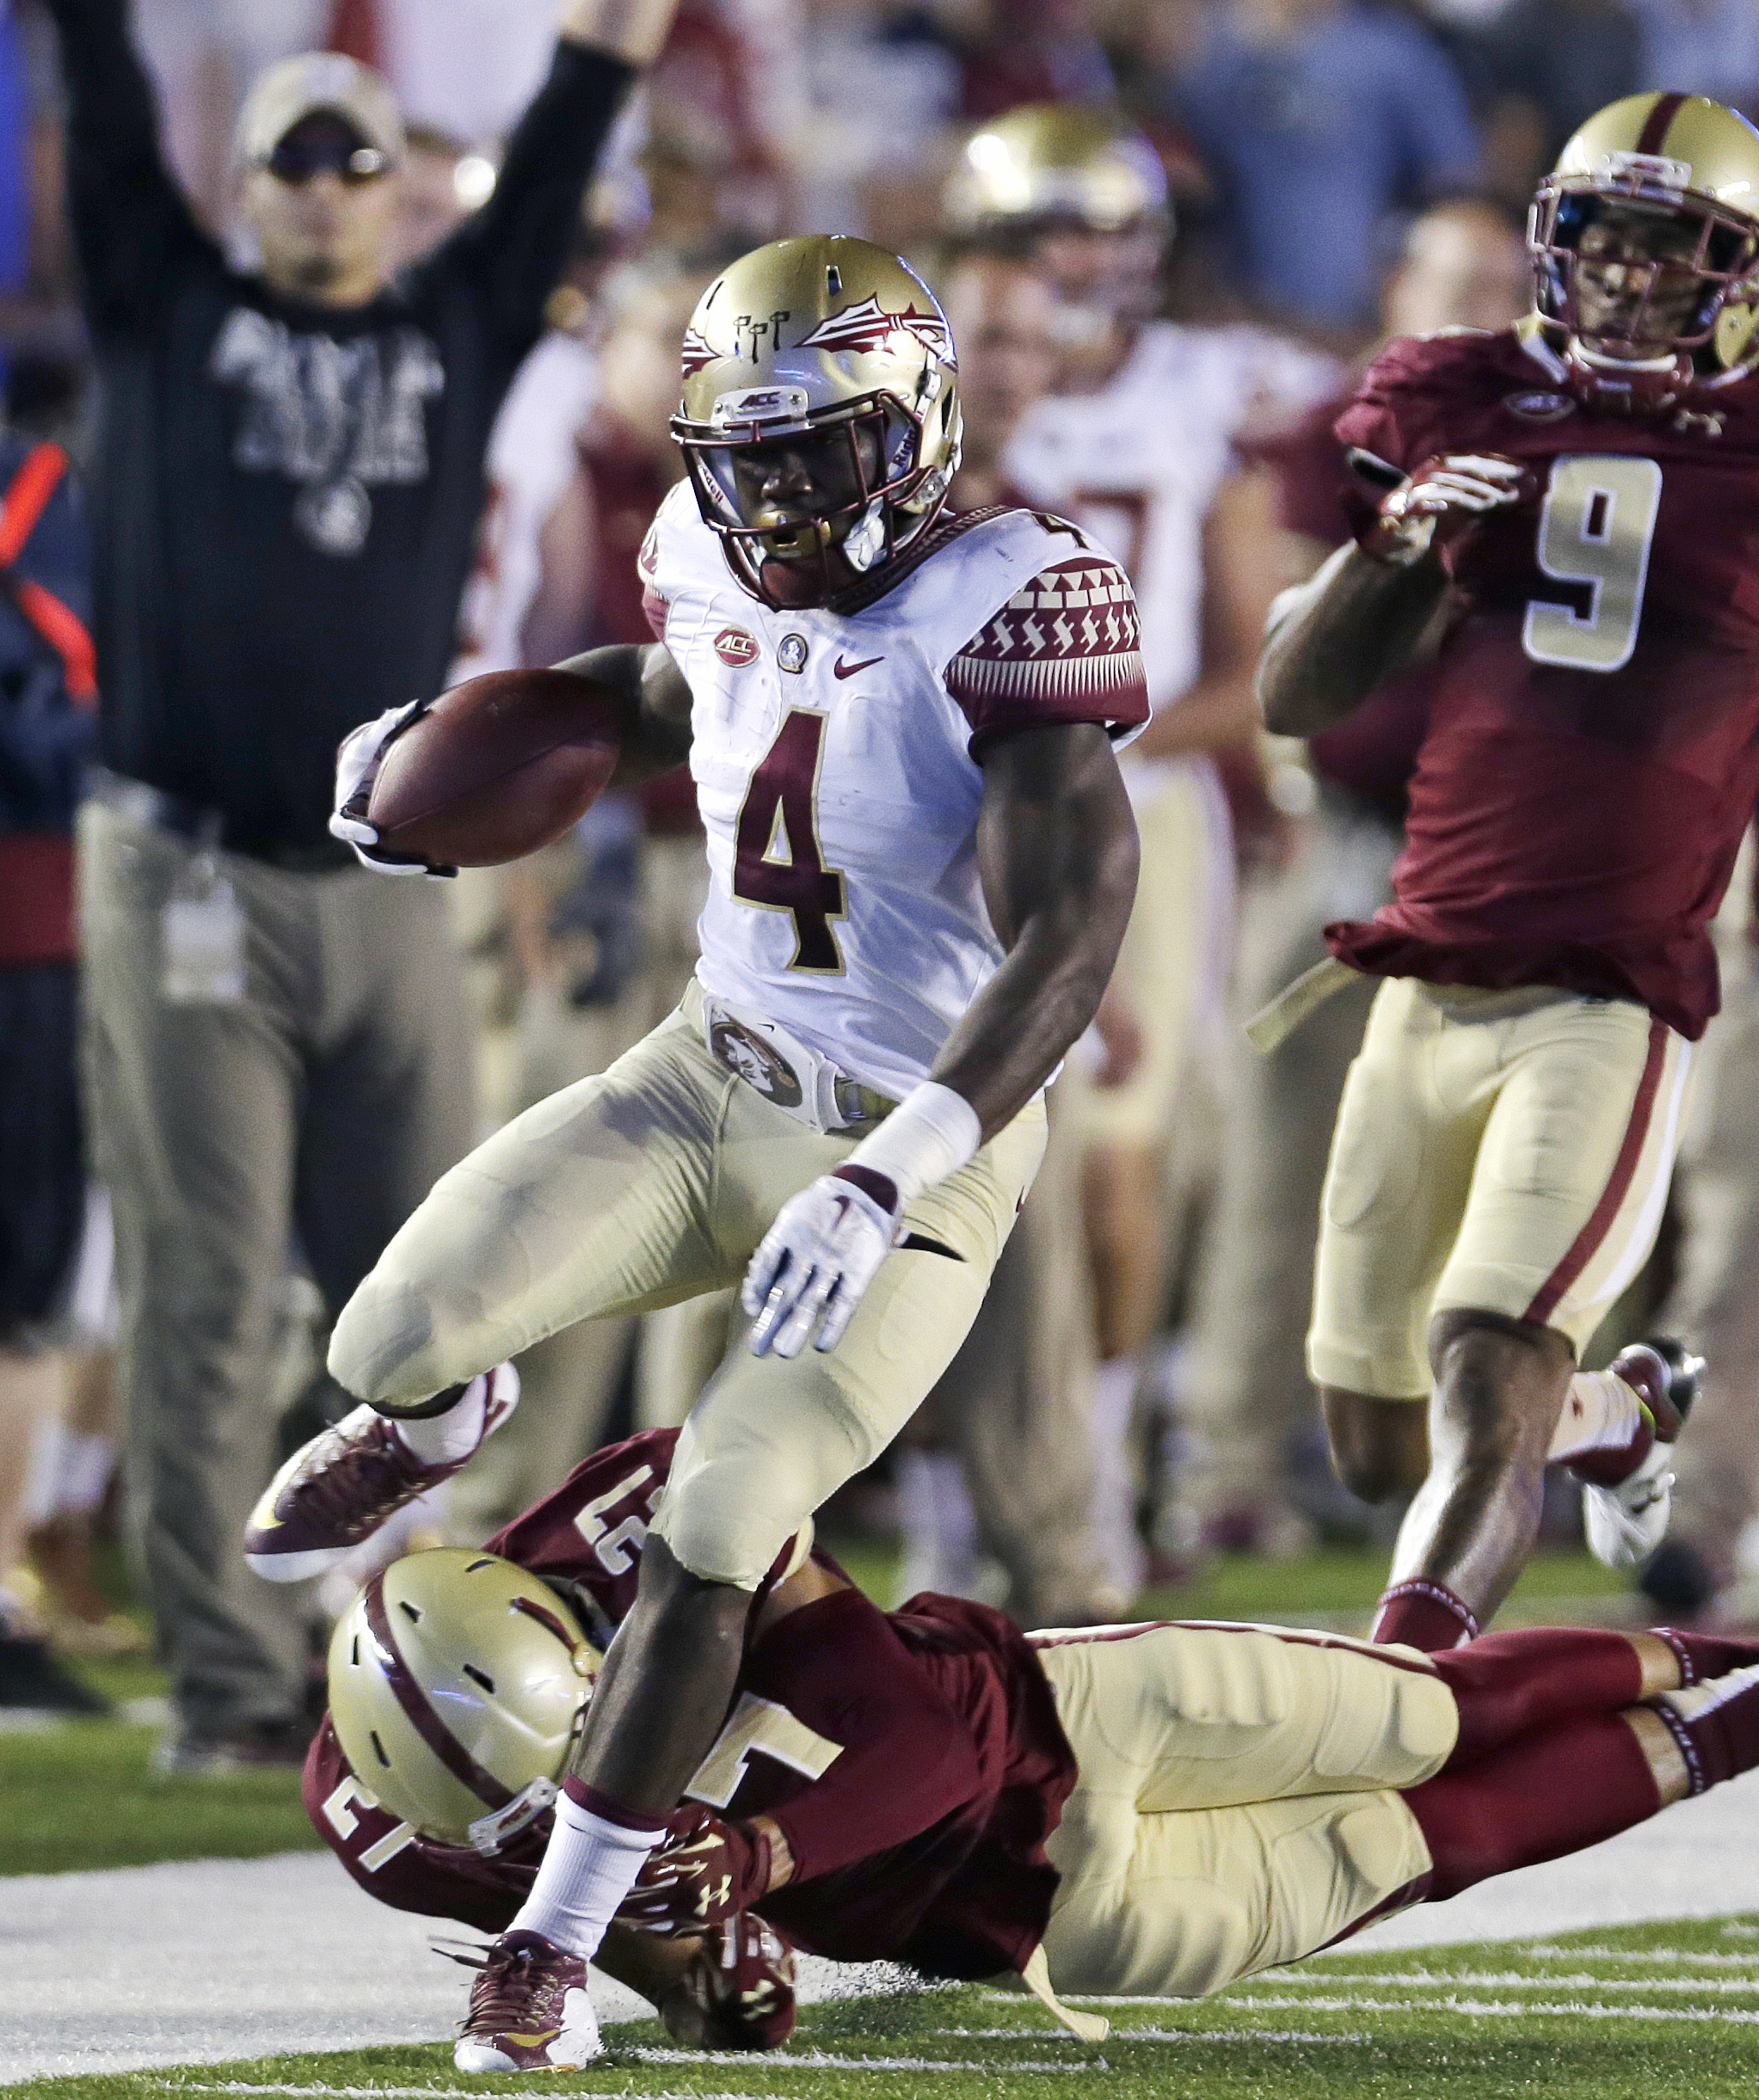 FILE - In this Sept. 18, 2015, file photo, Florida State running back Dalvin Cook (4) tries to outrun Boston College defensive back Justin Simmons (27) and defensive back John Johnson (9) during the first half of an NCAA college football game in Boston. F